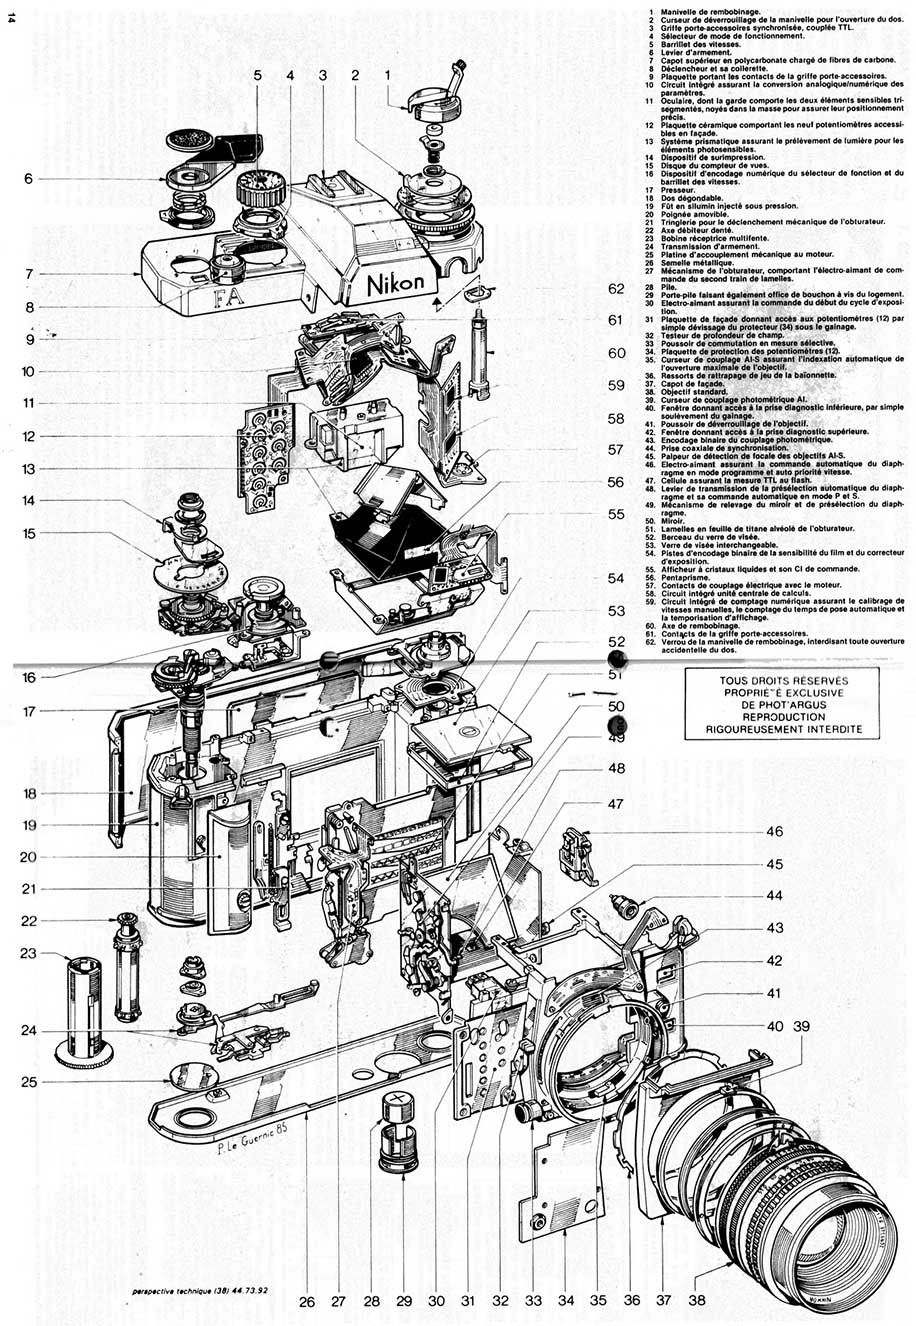 Old Schematics Wallpapers on aircraft electrical schematic